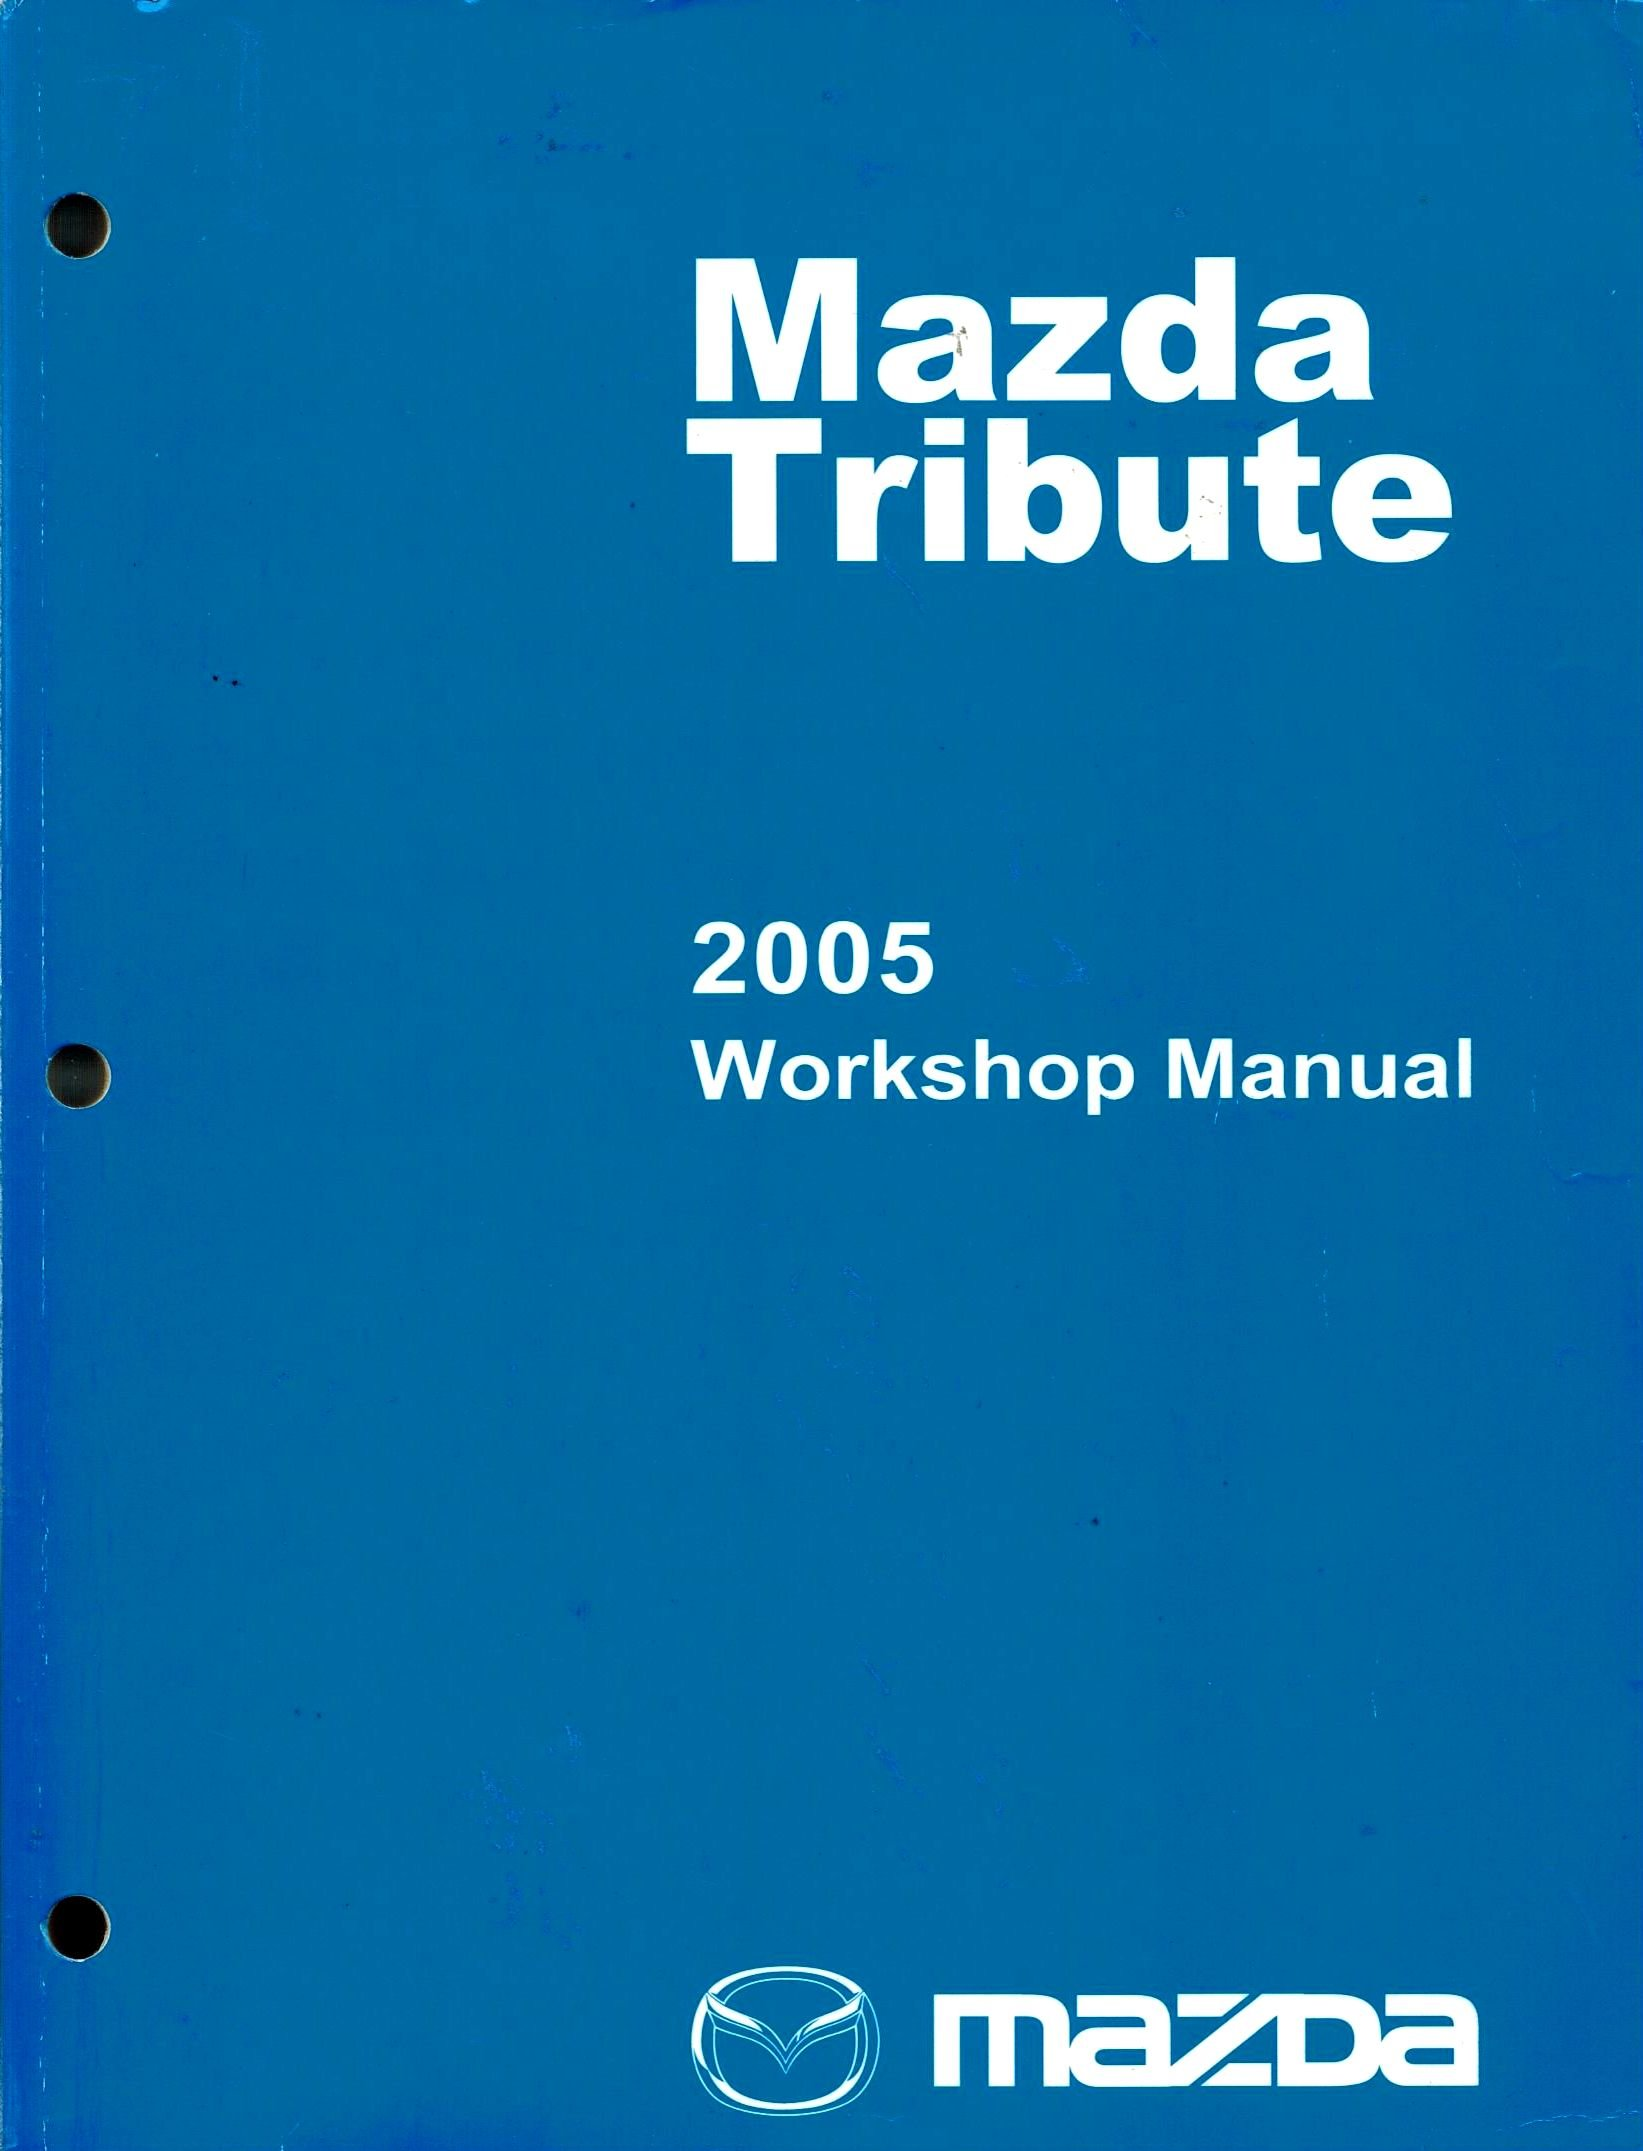 2005 Mazda Tribute Workshop Manual: Mazda Motor Corporation: 0662712535401:  Amazon.com: Books